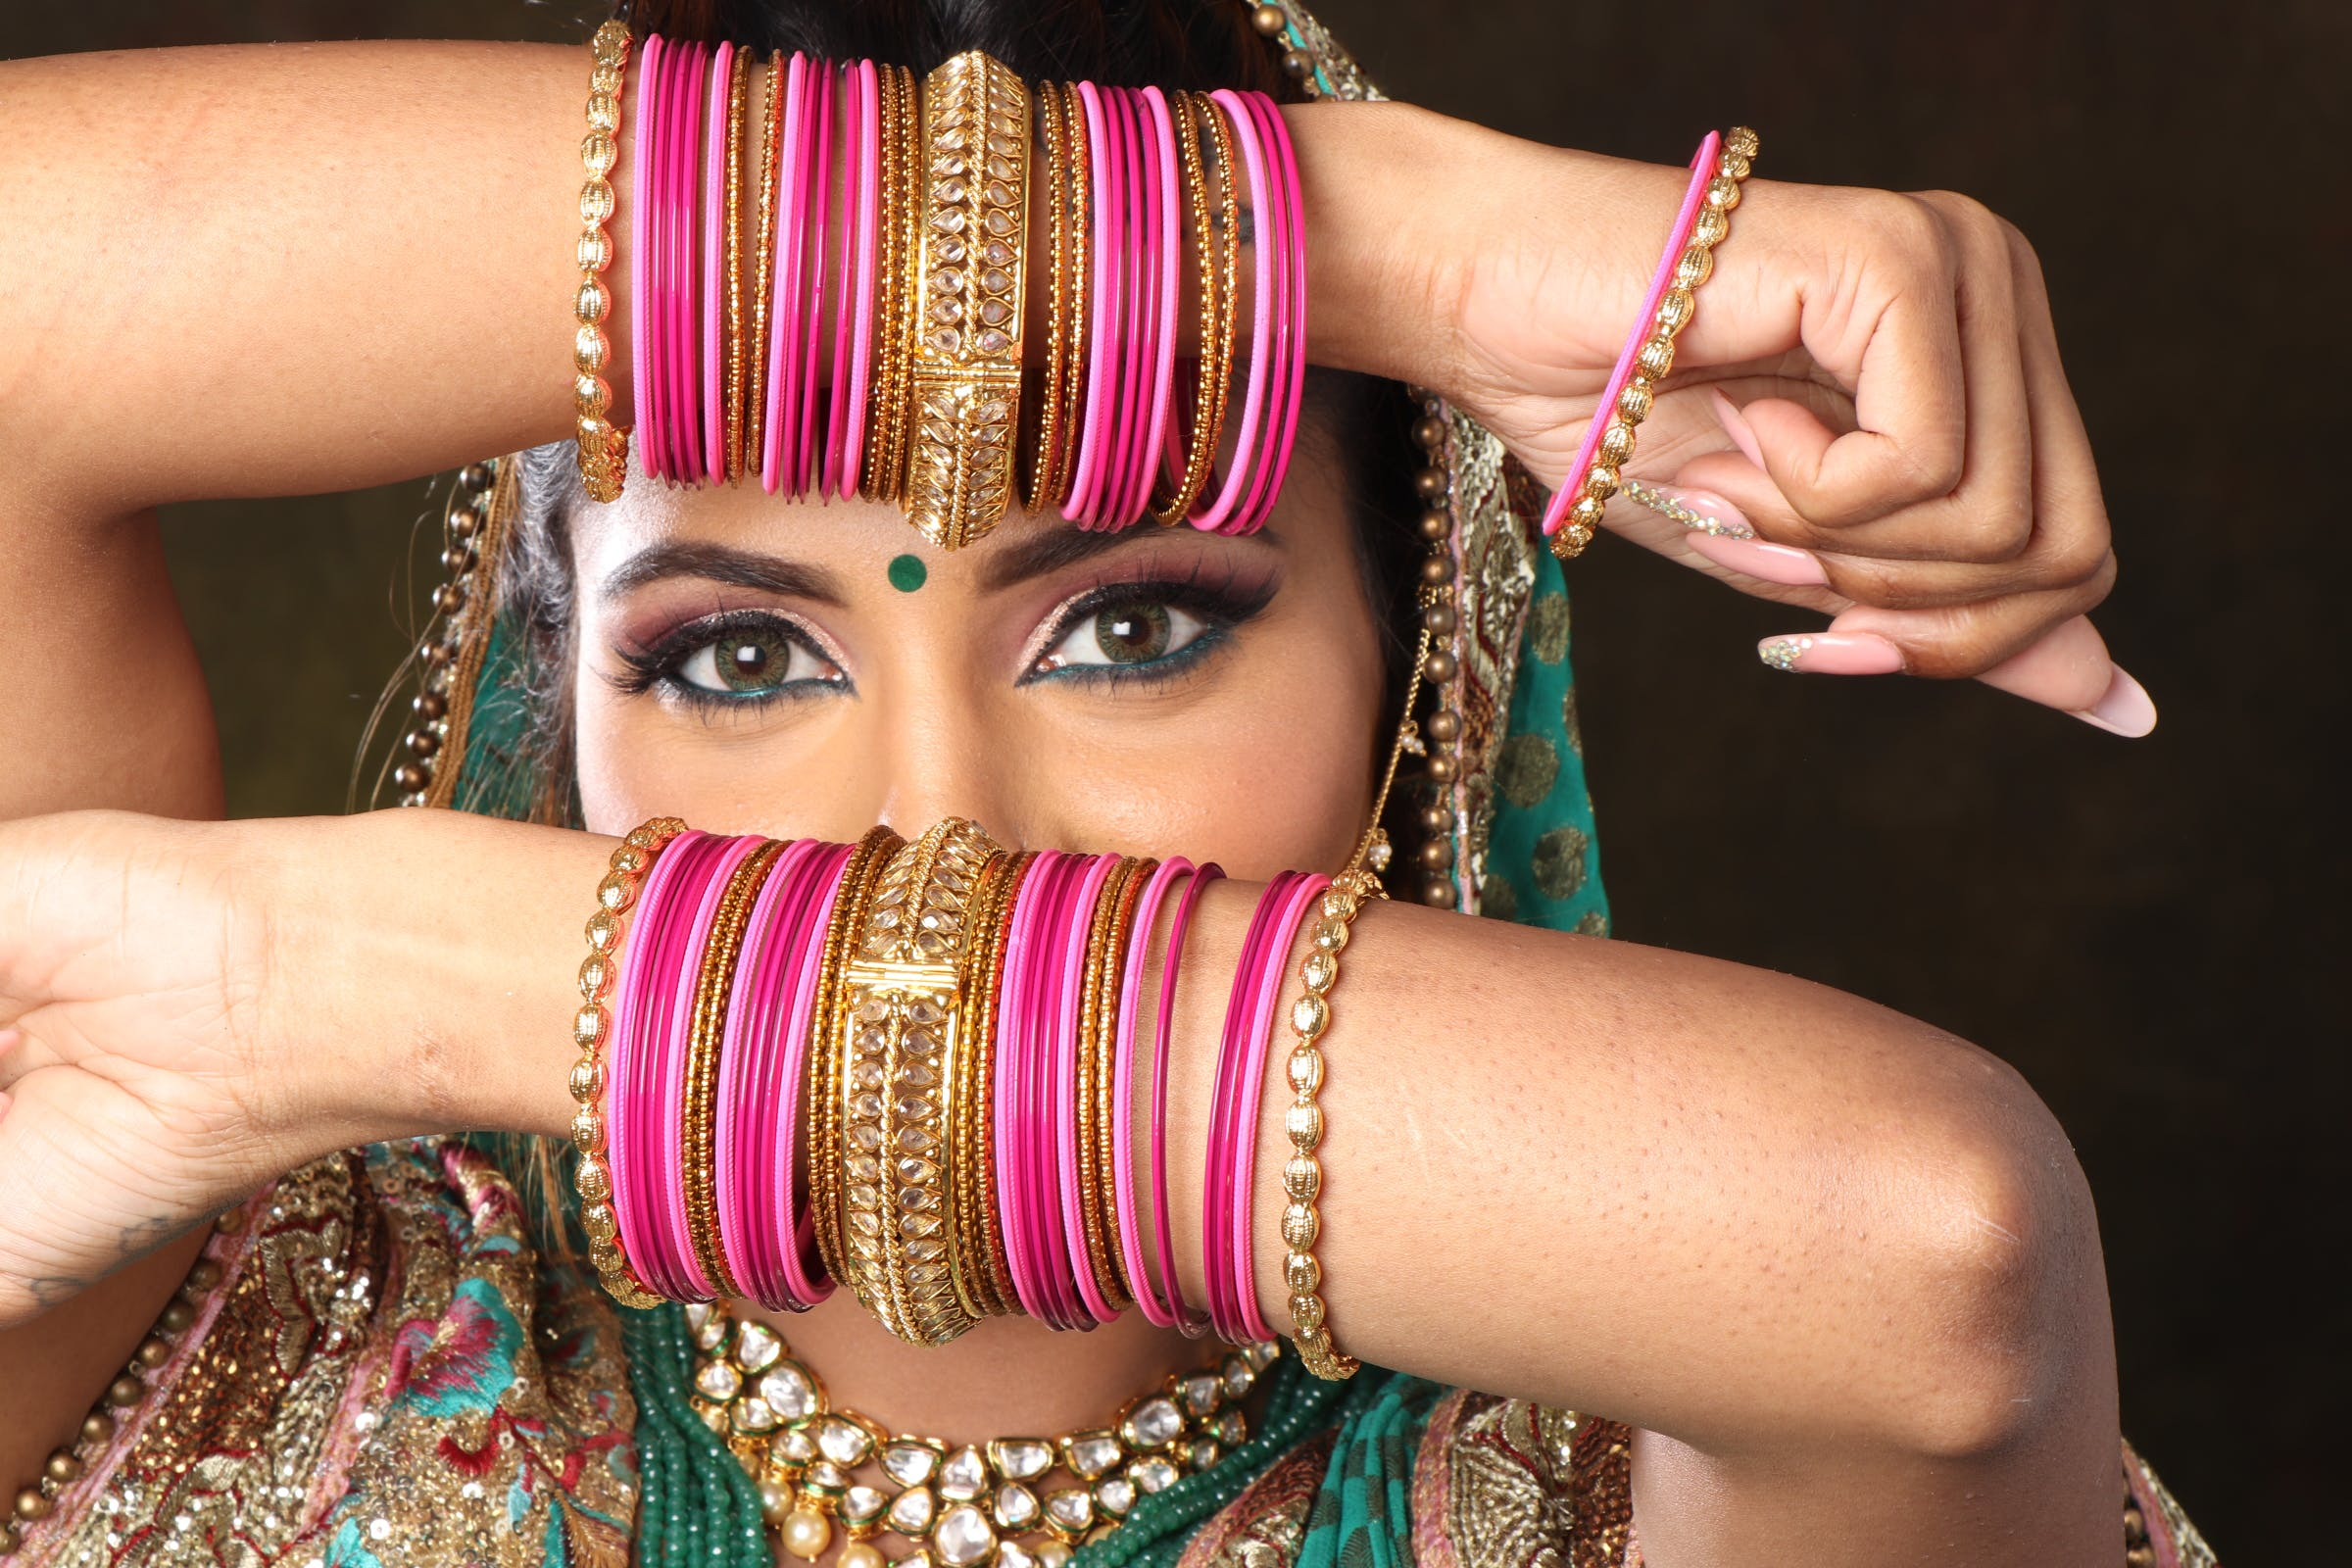 Woman Wearing Bangle Bracelets